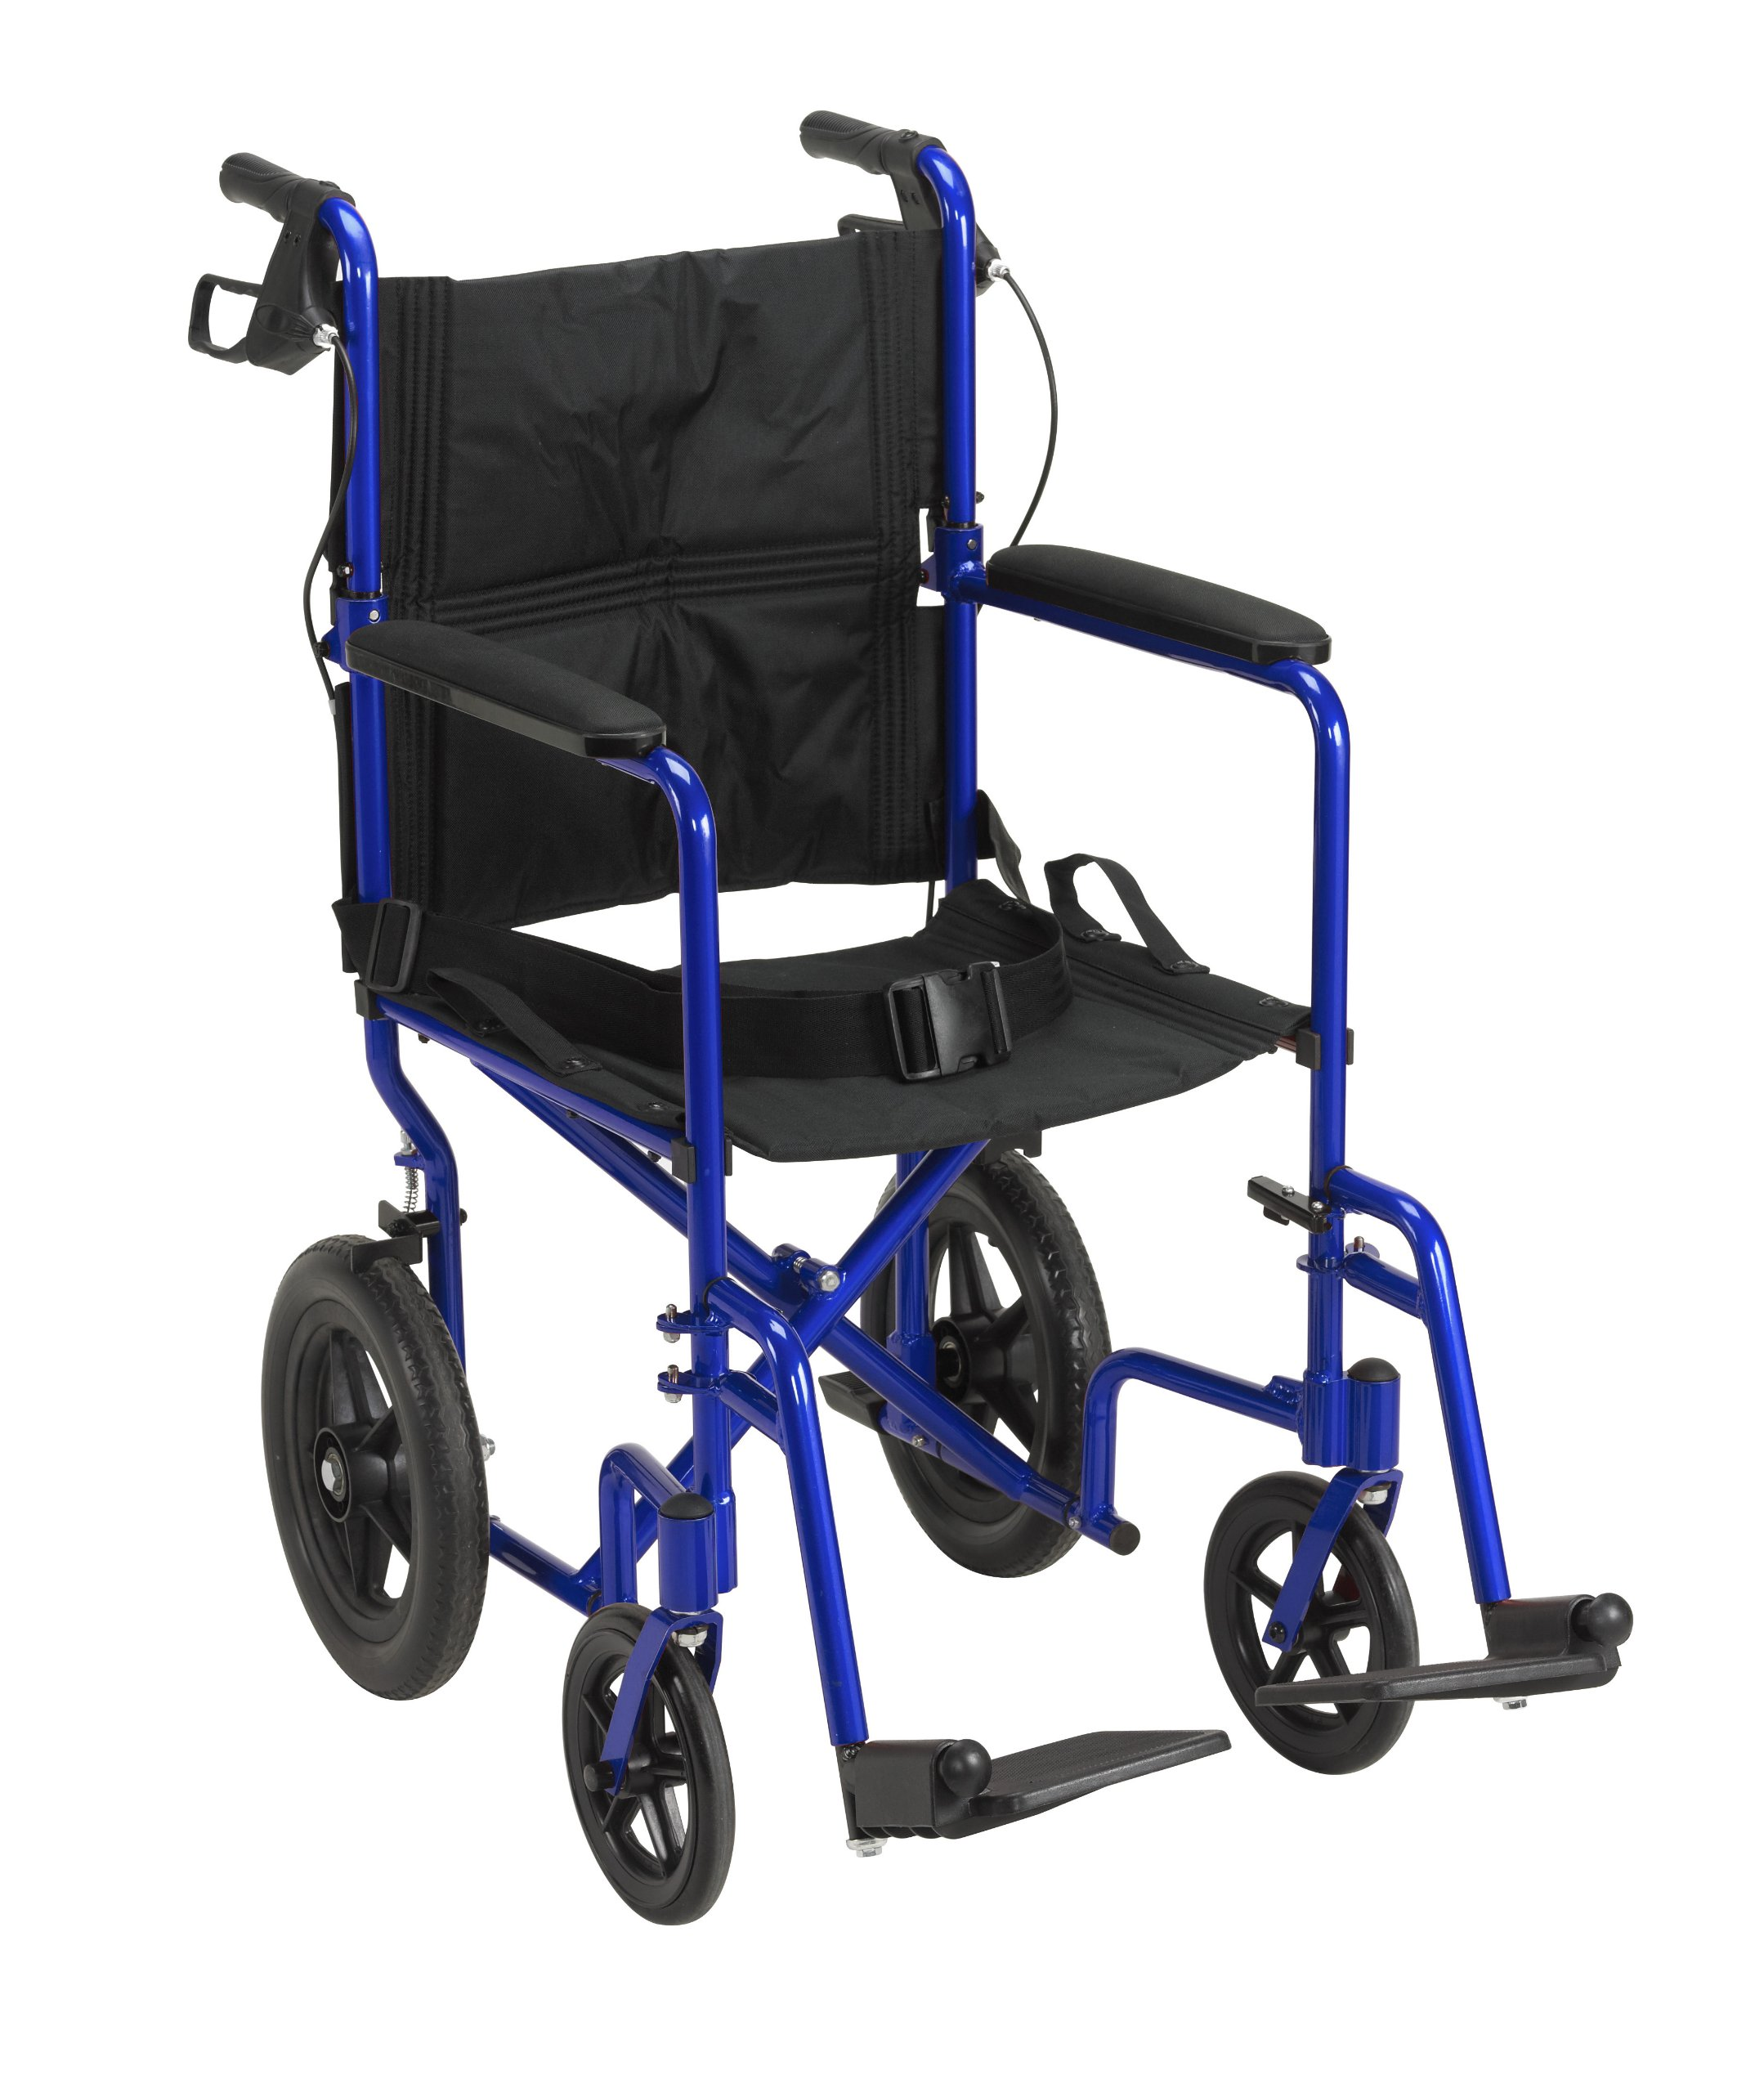 Drive Medical Lightweight Expedition Transport Wheelchair with Hand Brakes, Blue by Drive Medical